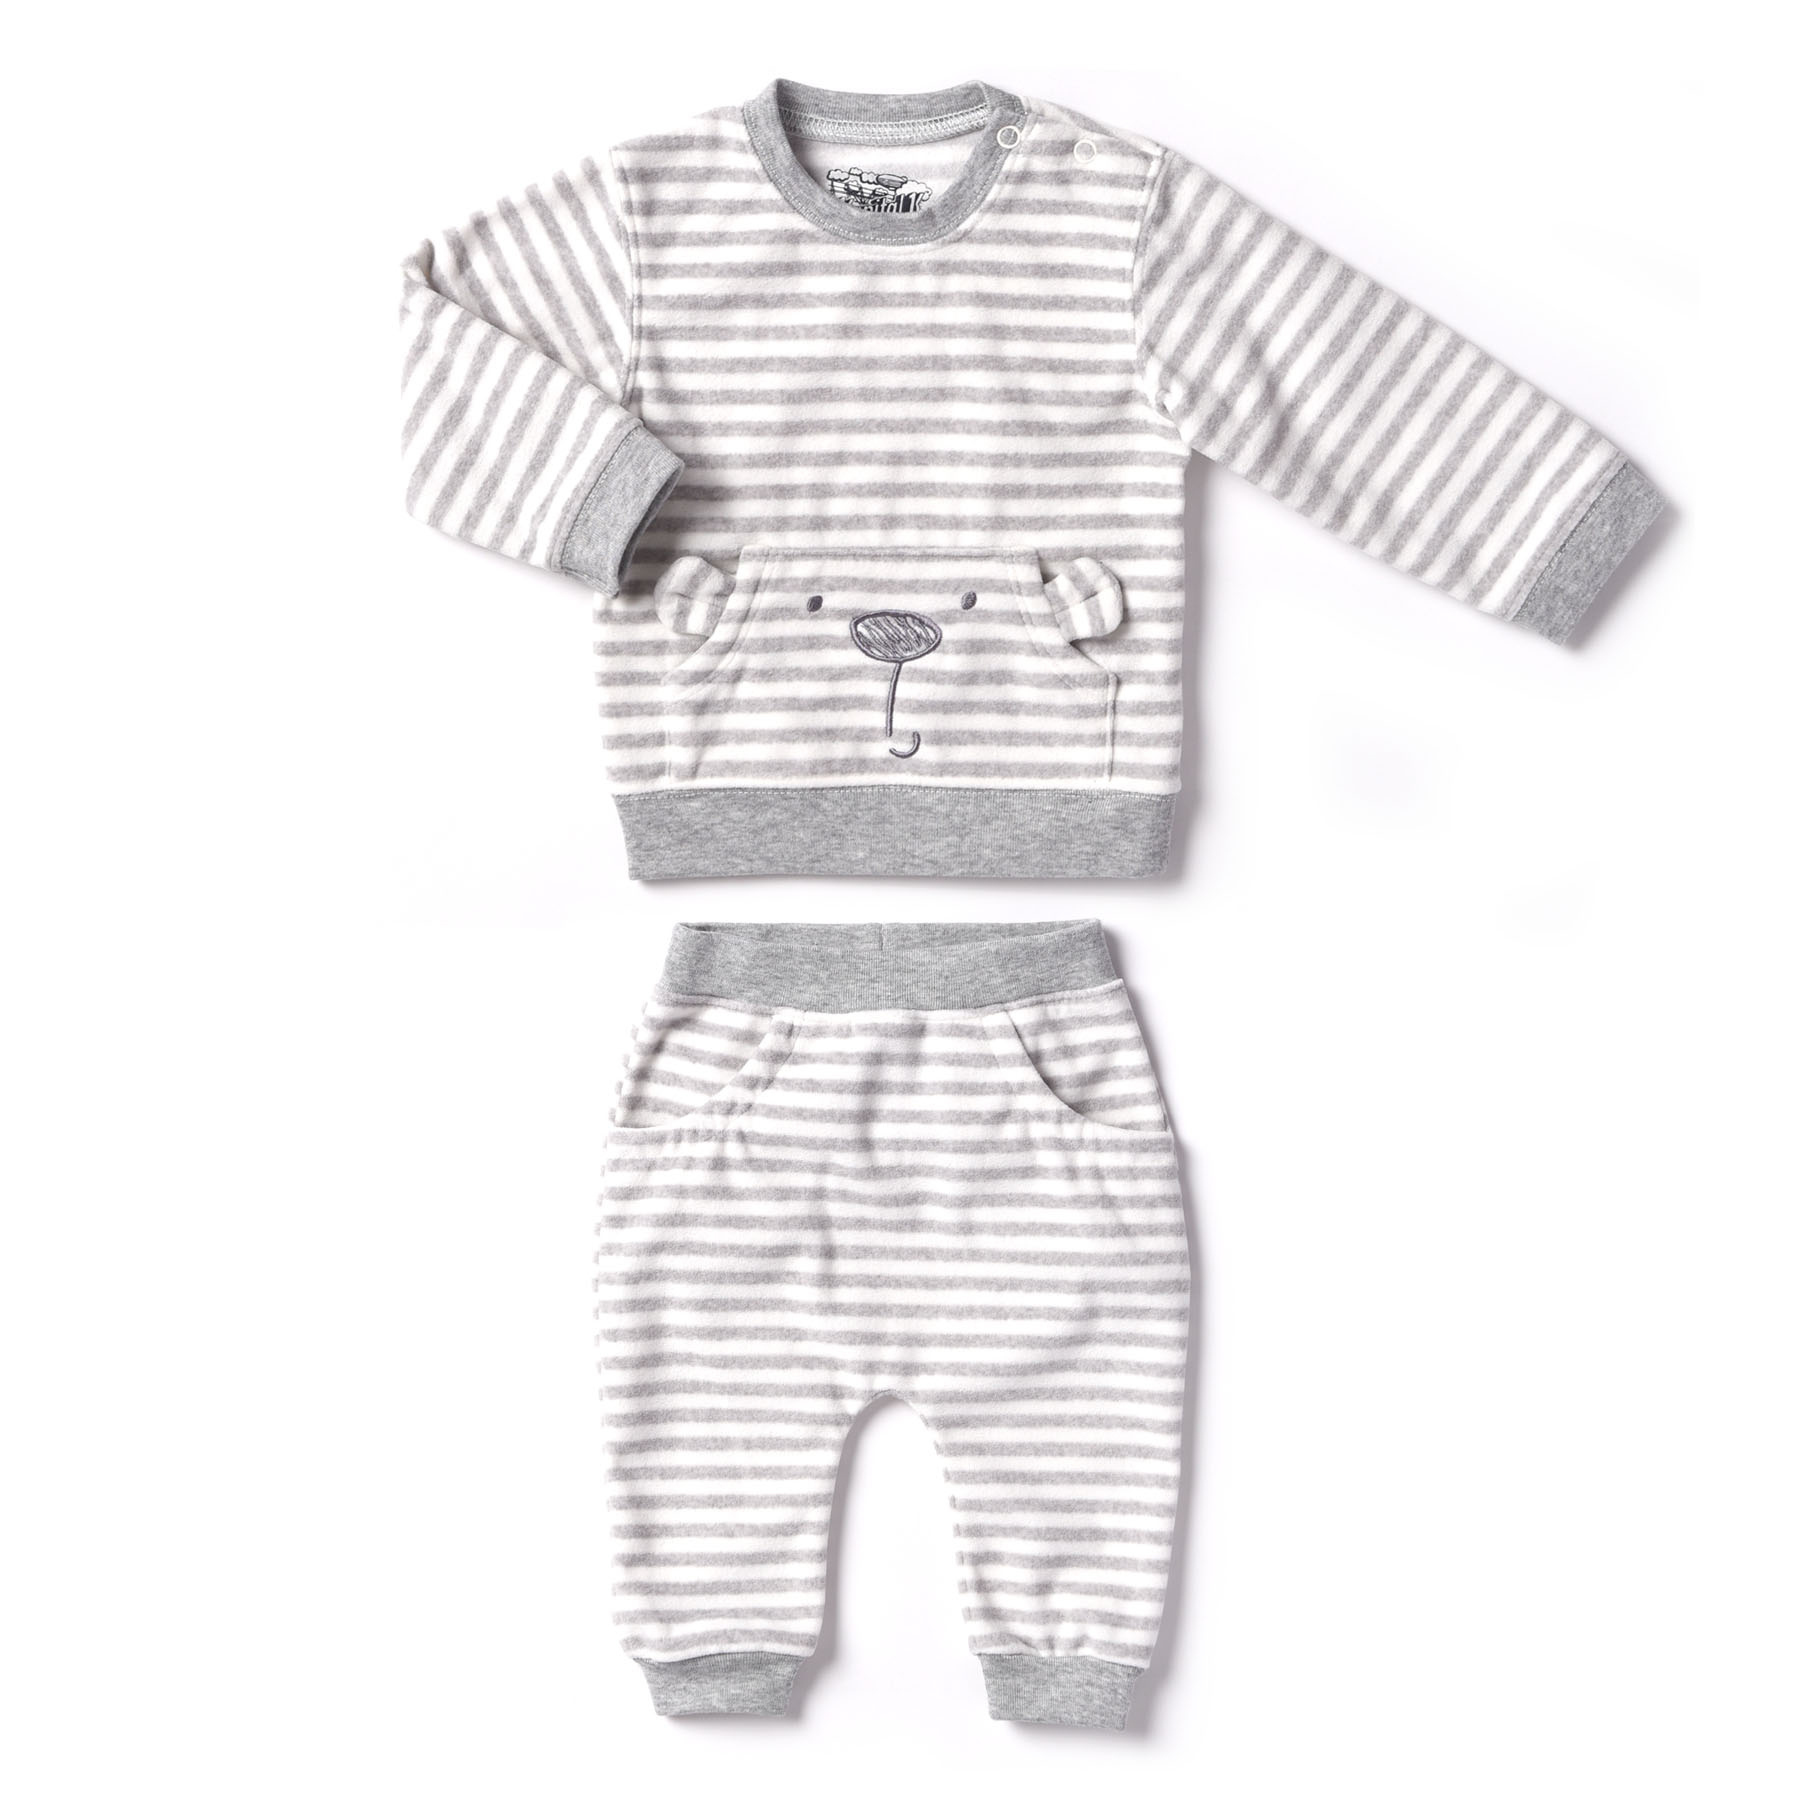 Kapital K Newborn Baby Boy or Girl Unisex Polar Fleece Top & Pant 2pc Outfit Set